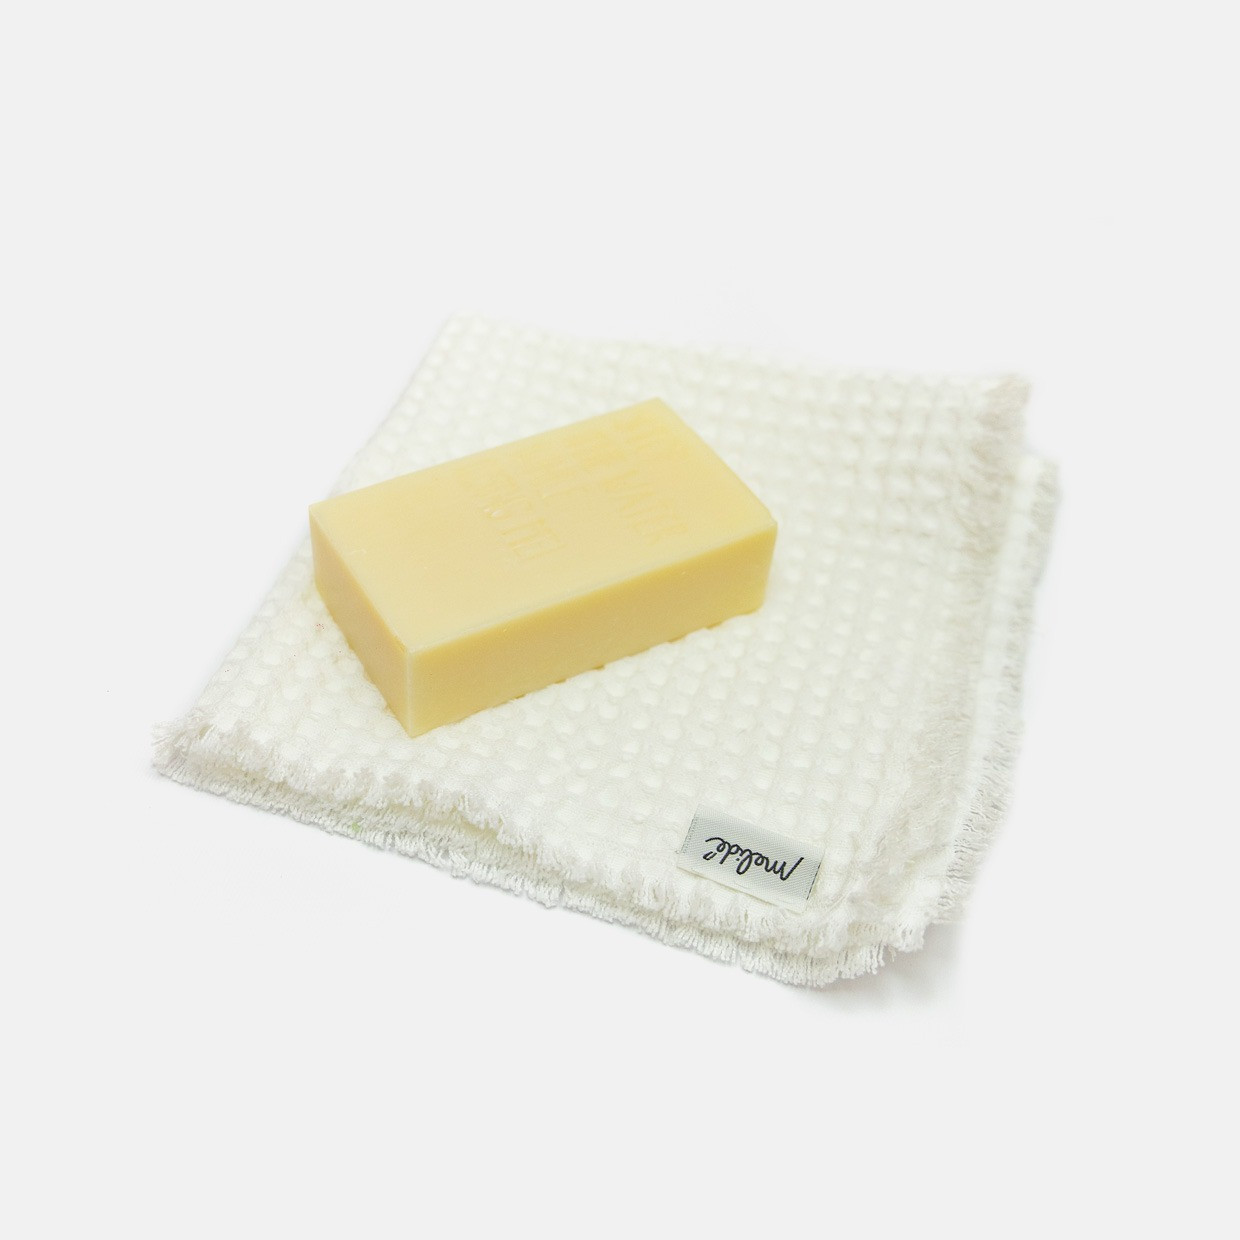 Kit lavetta + Limone e miele soap bar